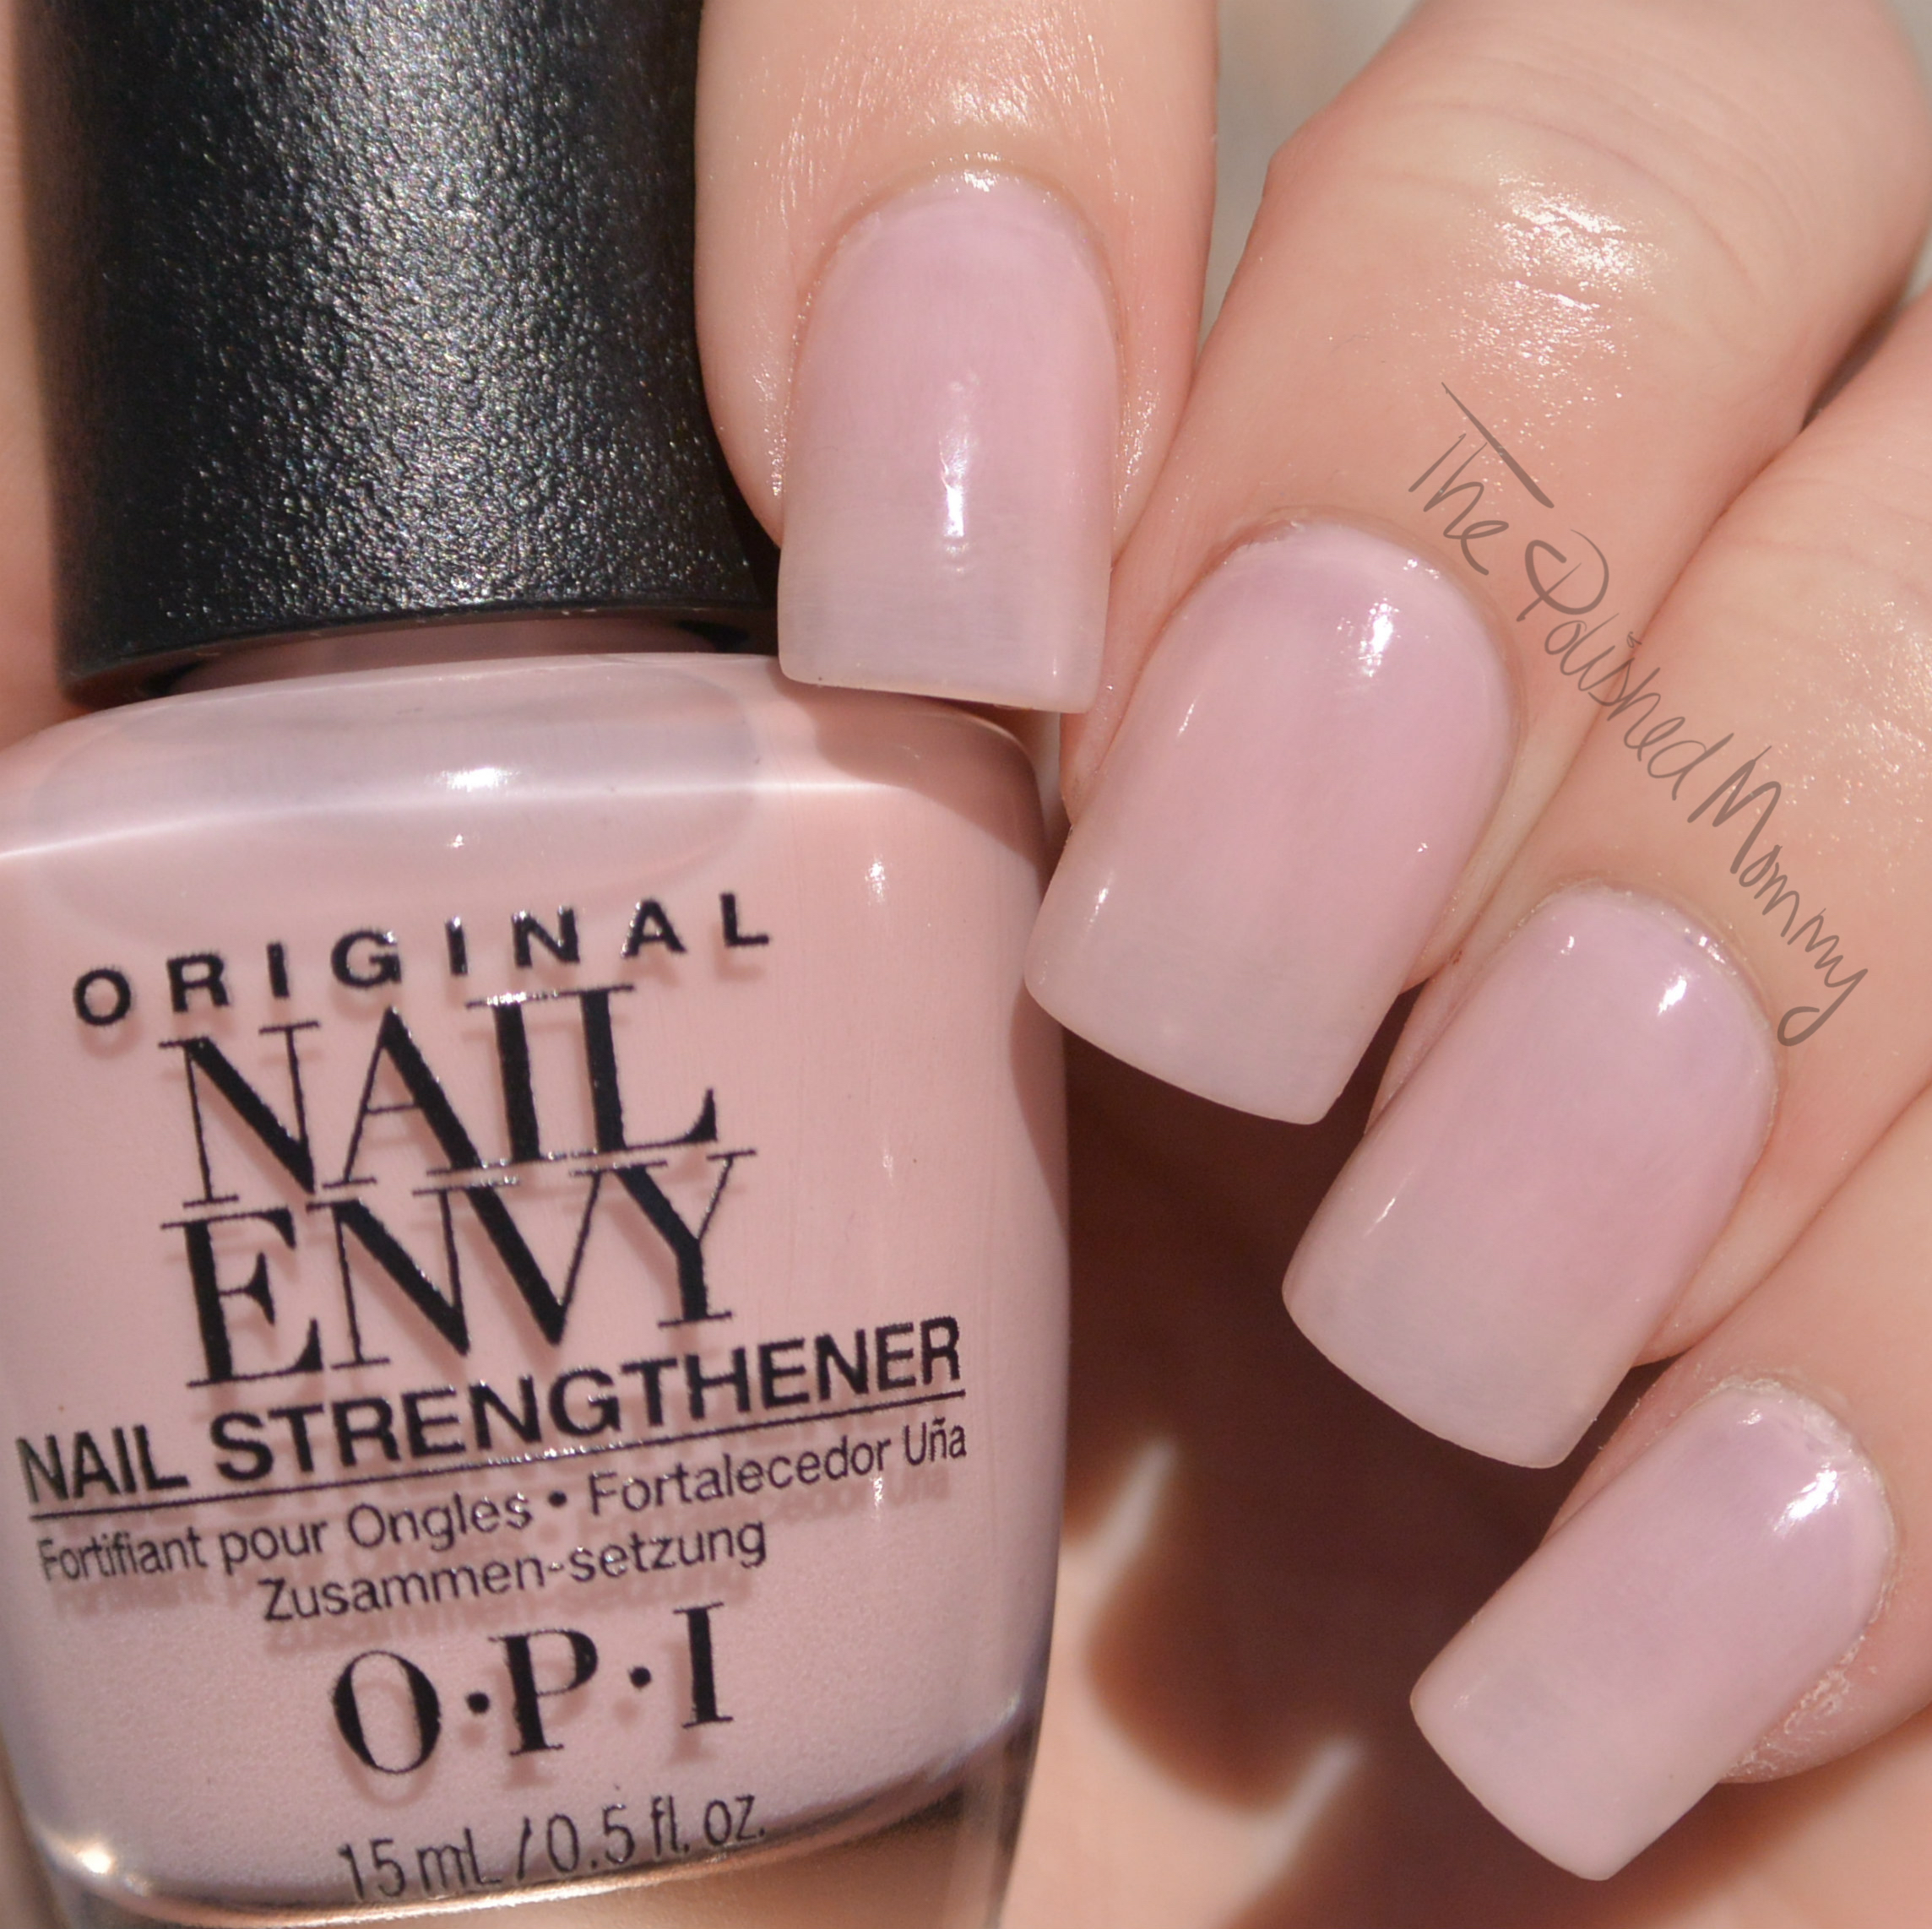 OPI Nail Envy Colors + GIVEAWAY - The Polished Mommy